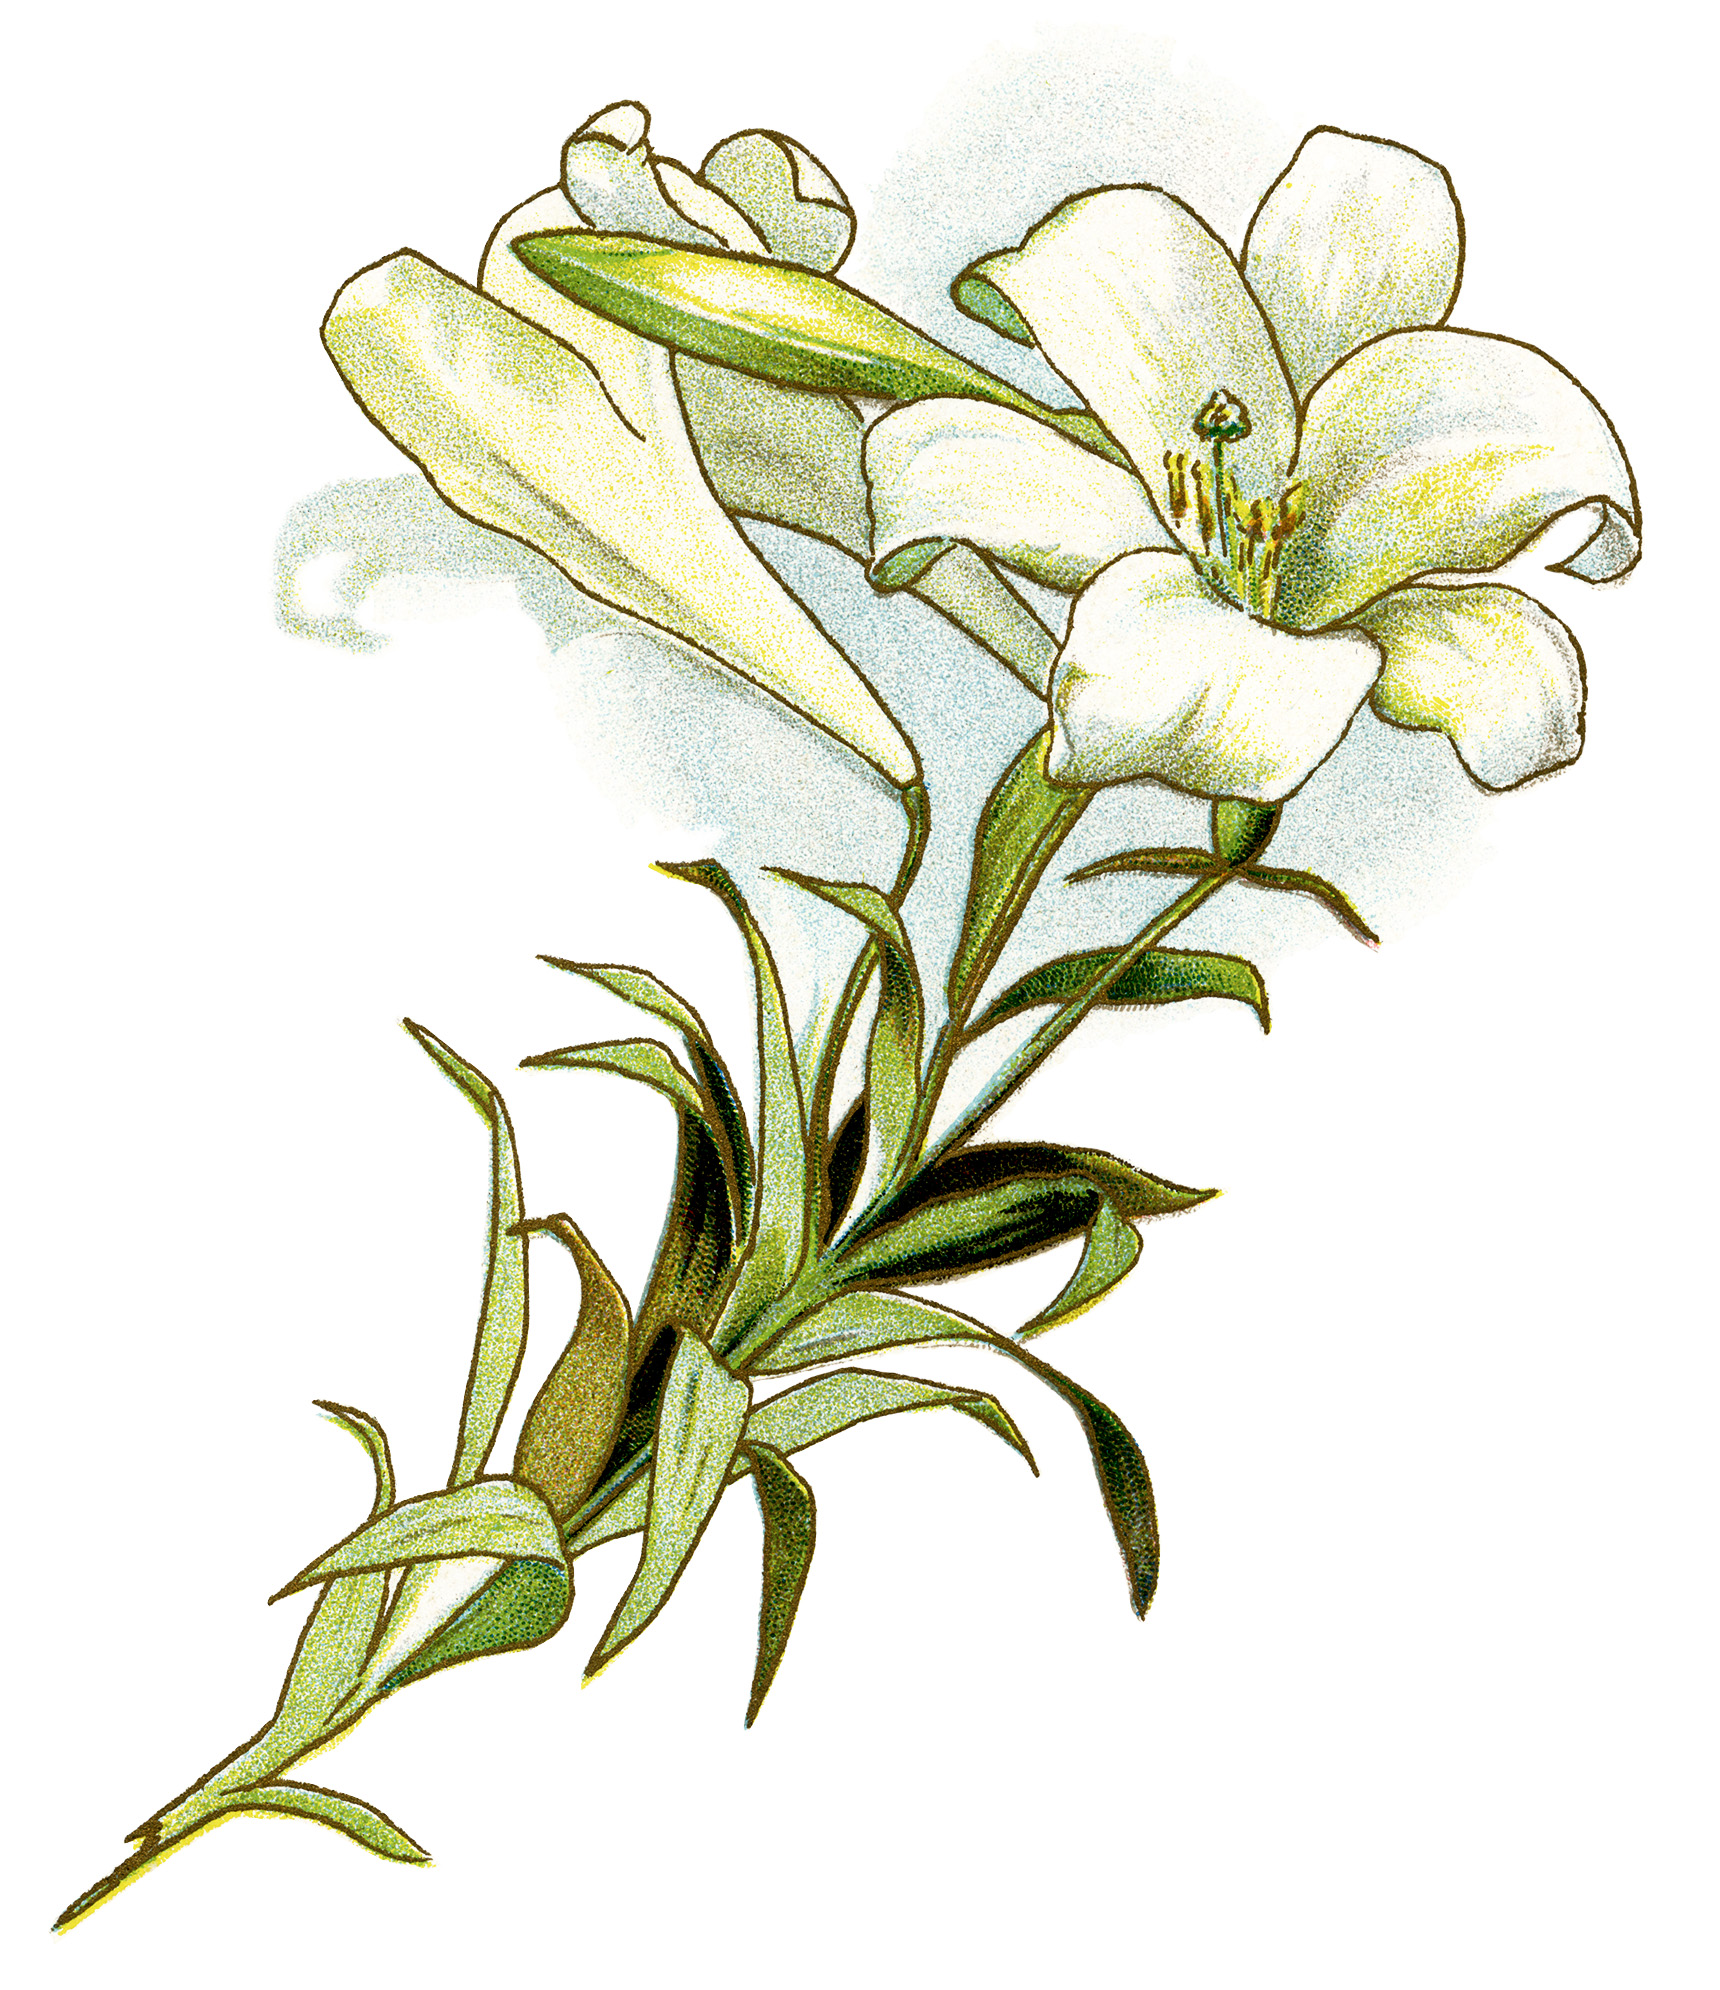 Lily image free clip art of easter lilies 2